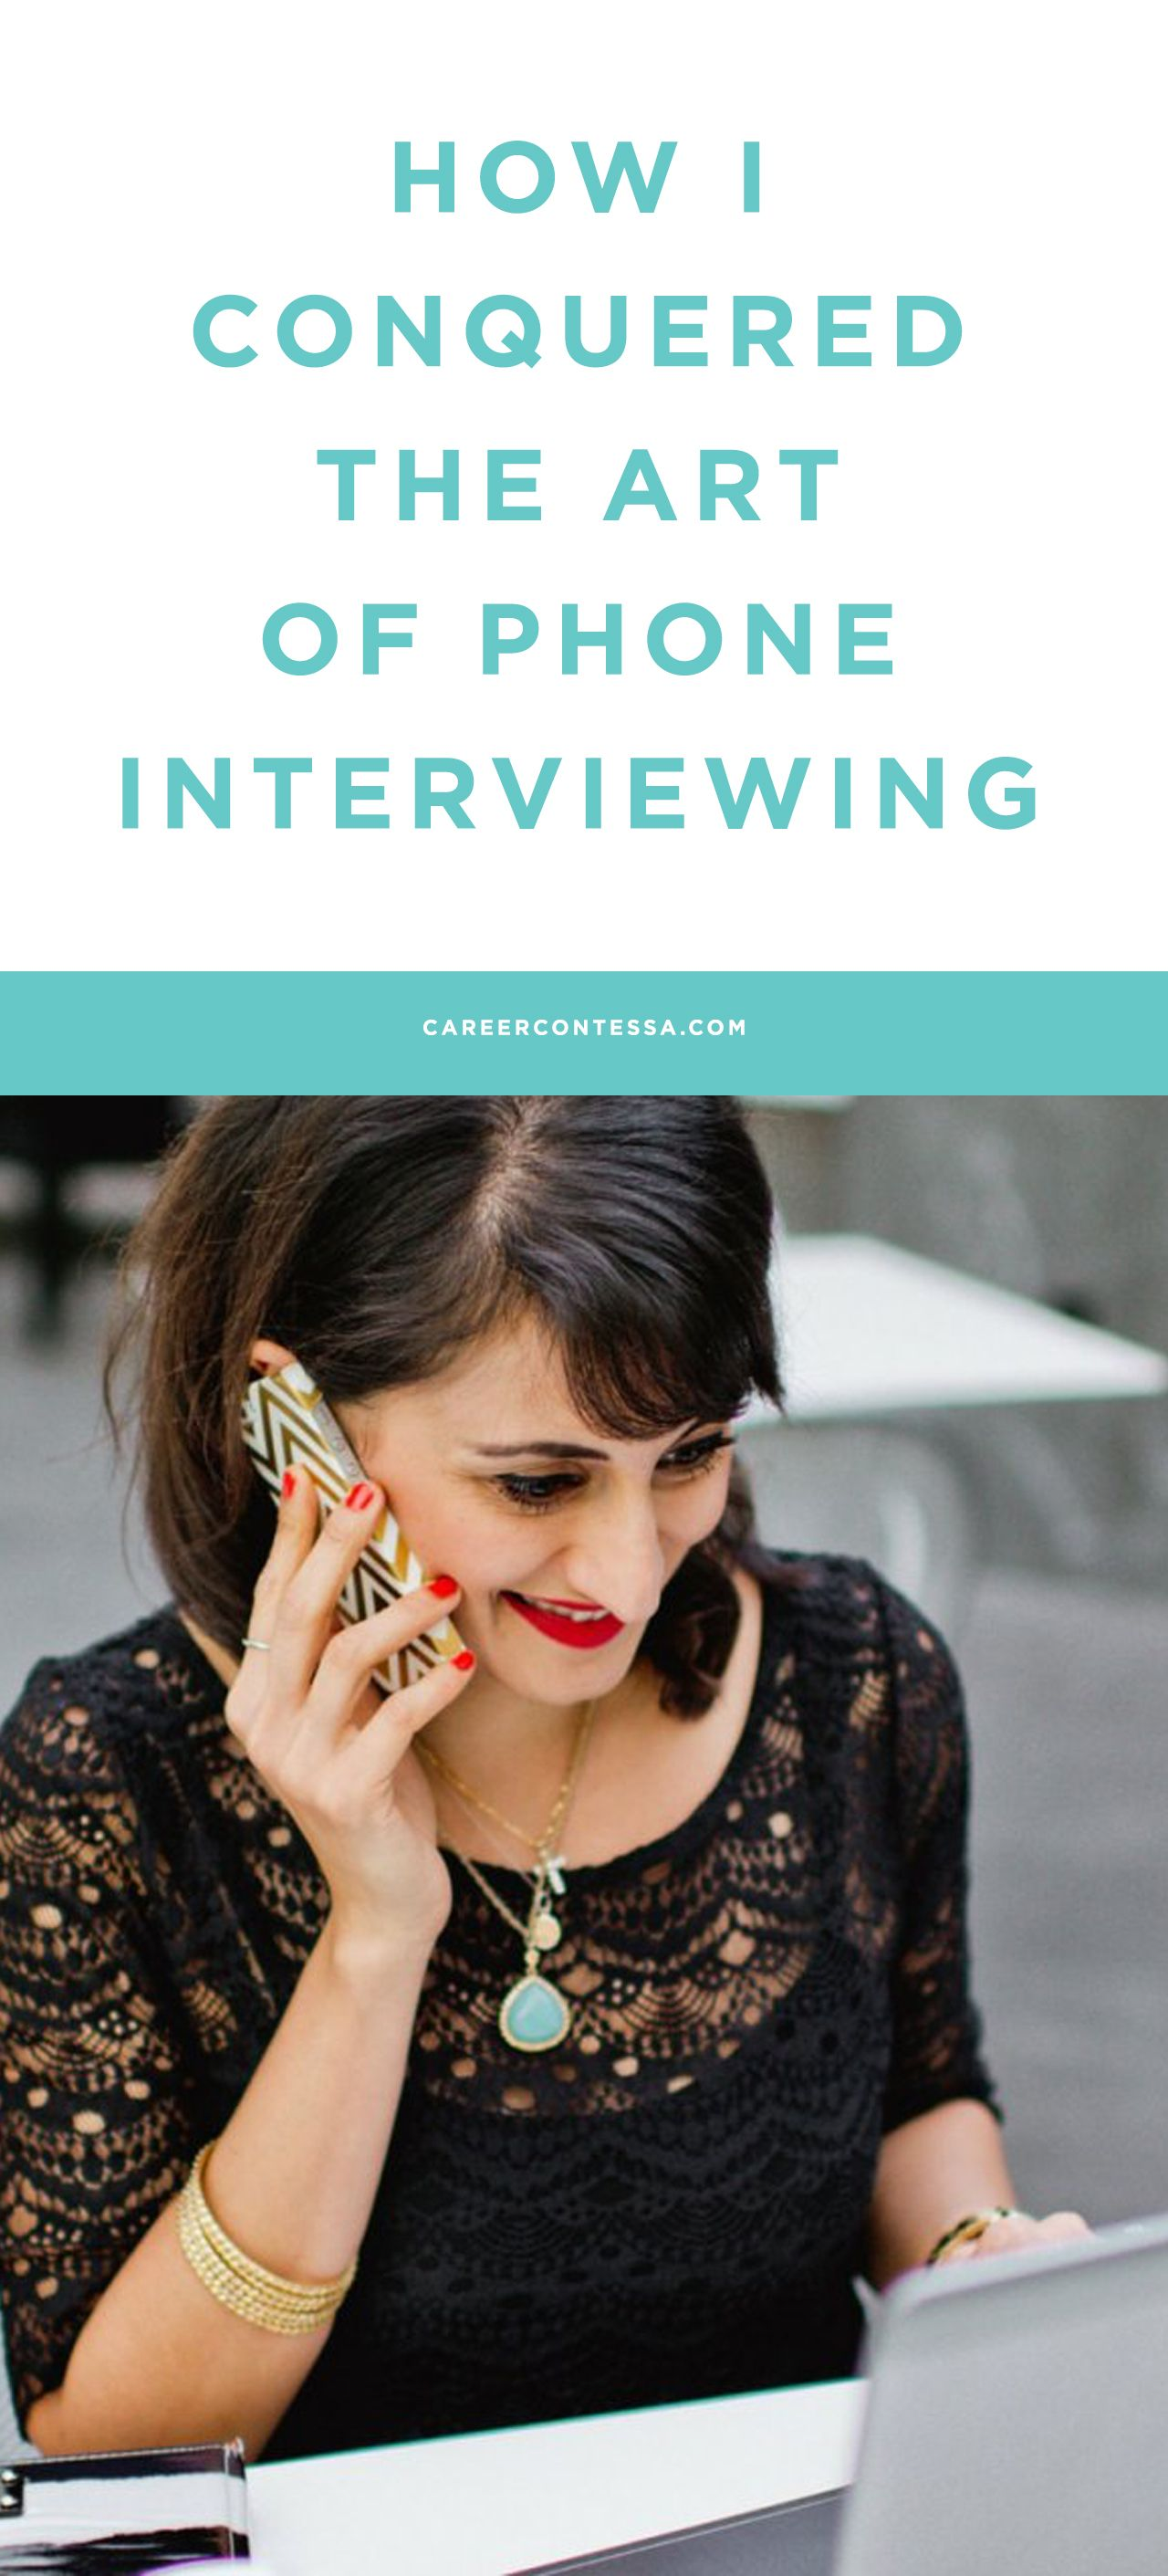 Interviewing in general is... scary. But phone interviews? The worst. Click to see how I conquered the art of phone interviewing. | CareerContessa.com